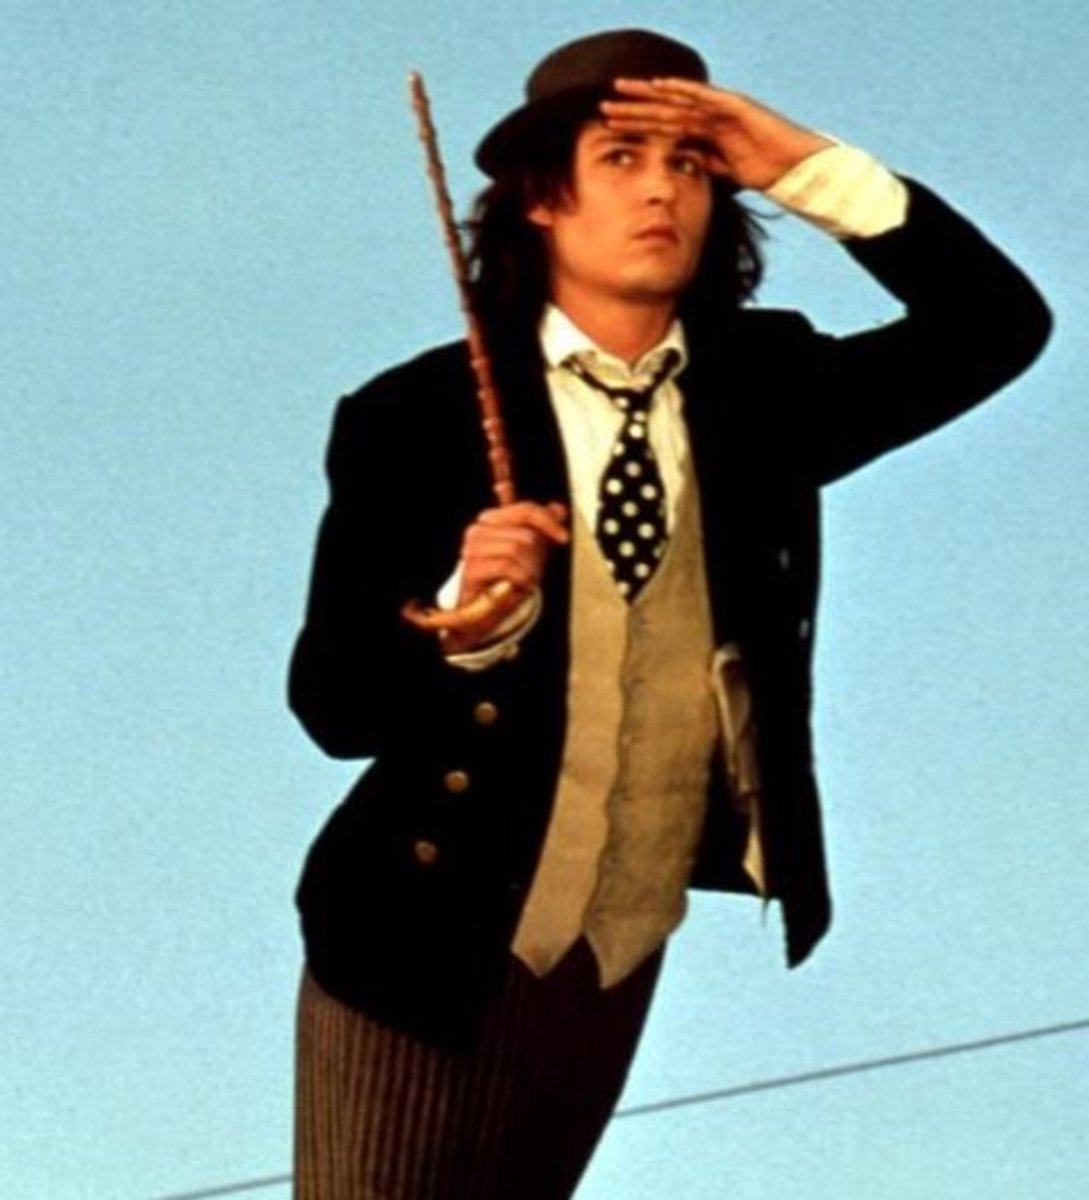 Dress Like Sam (Johnny Depp) from Benny and Joon